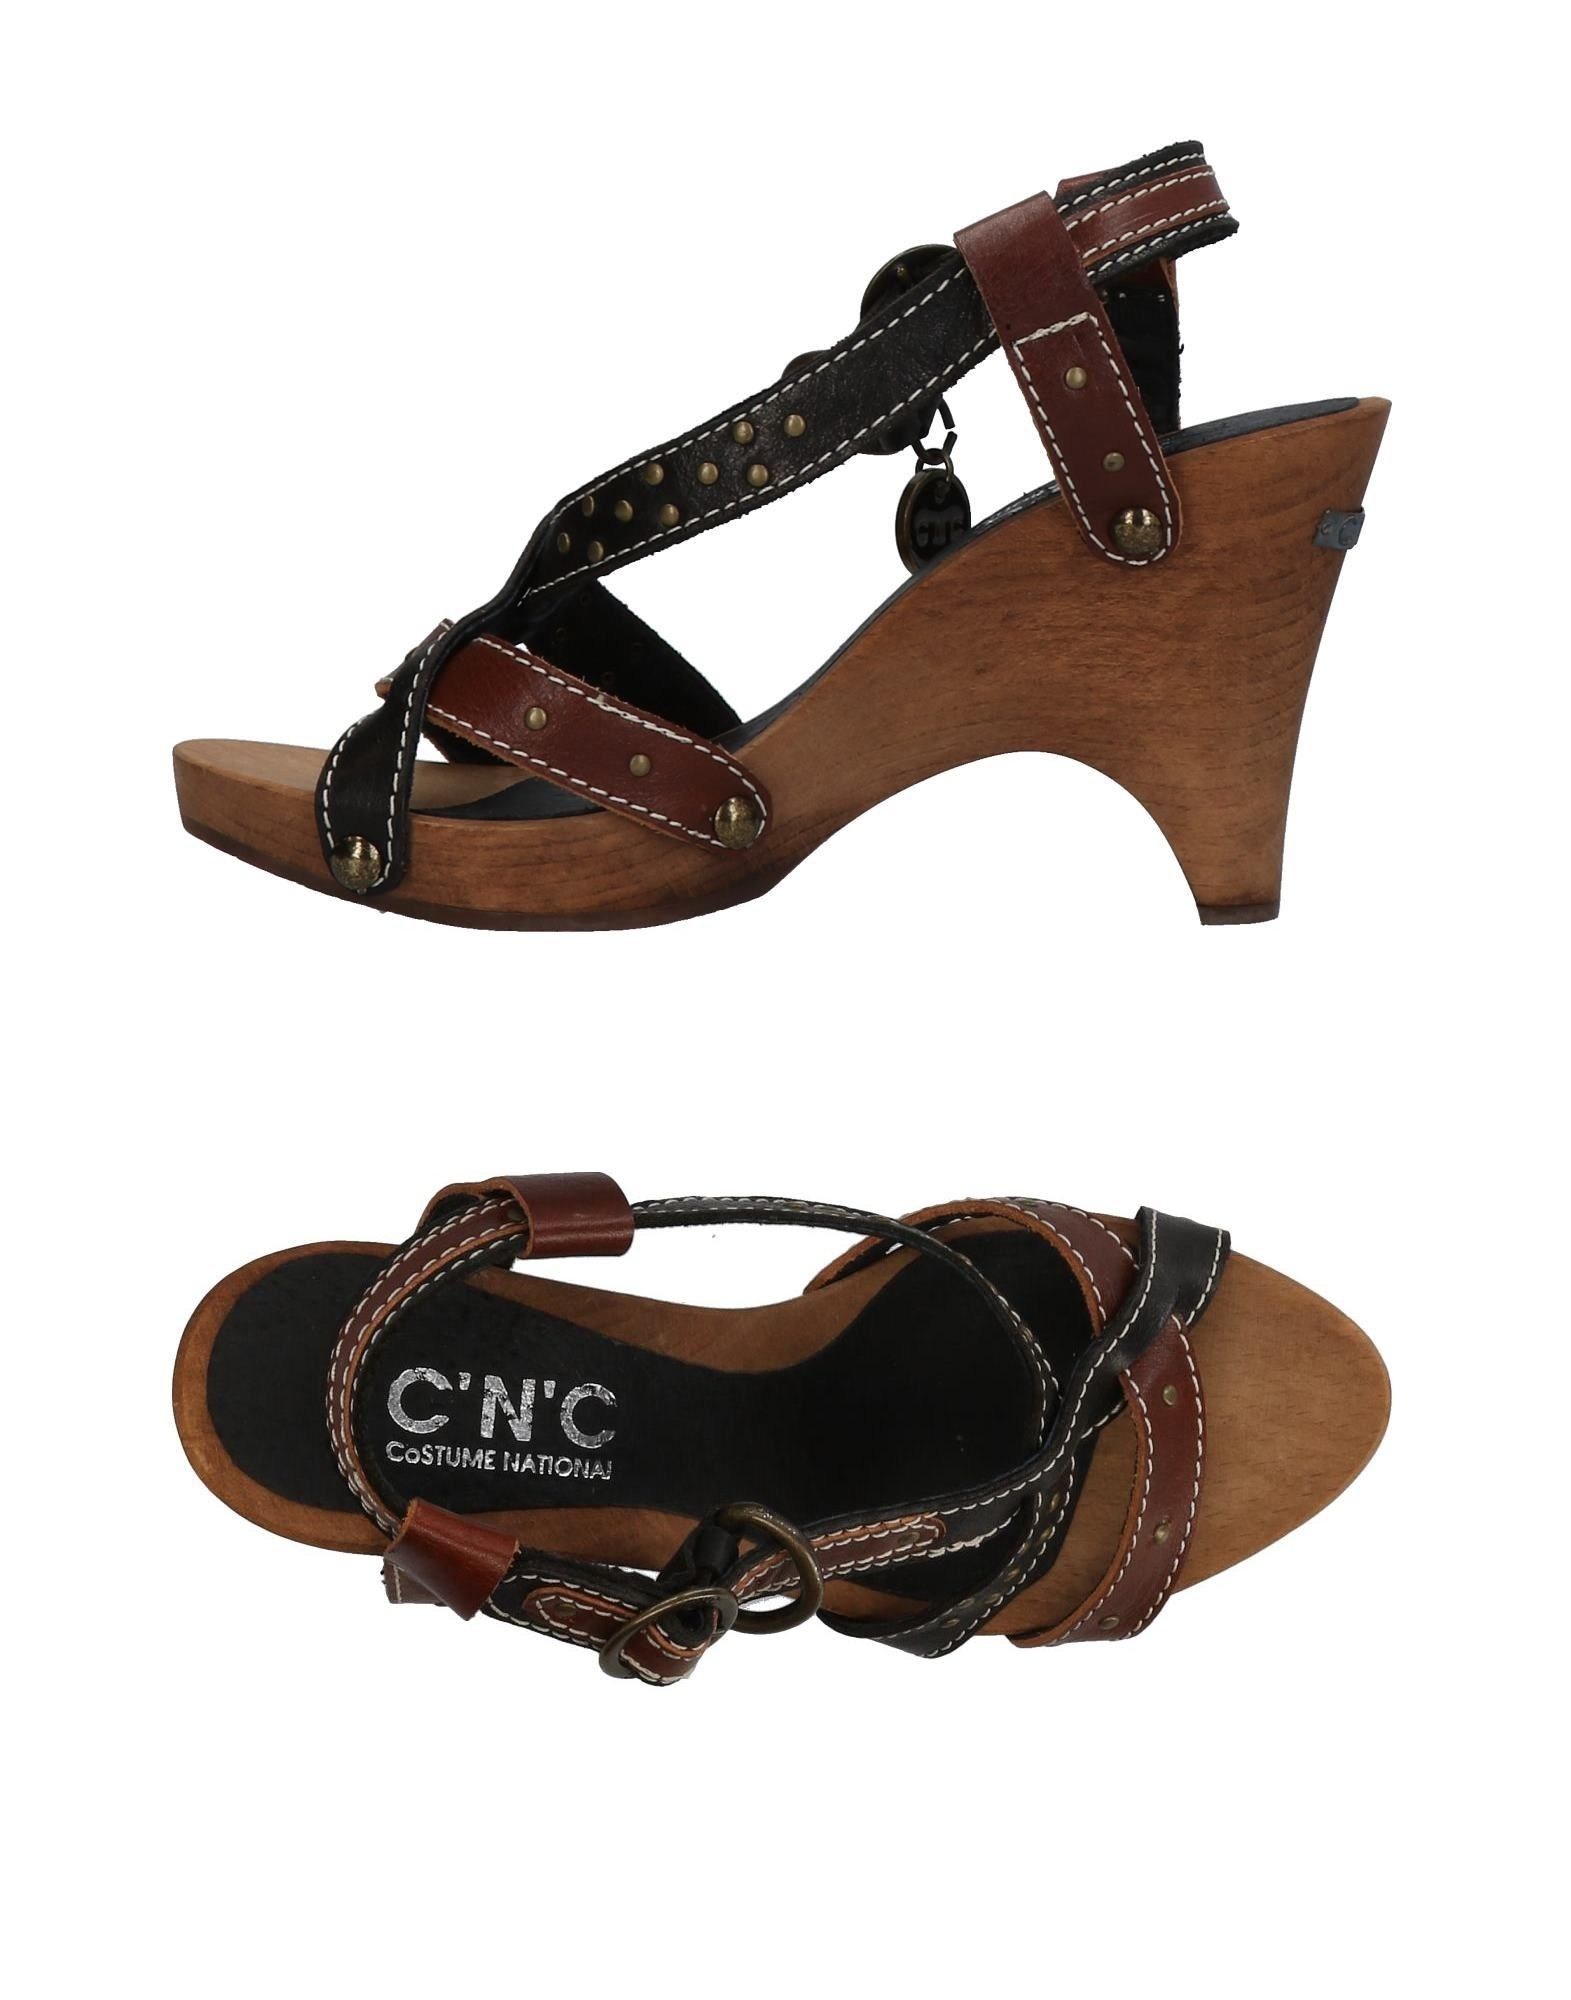 C'n'c' Costume National Sandalen Damen  11422141FA